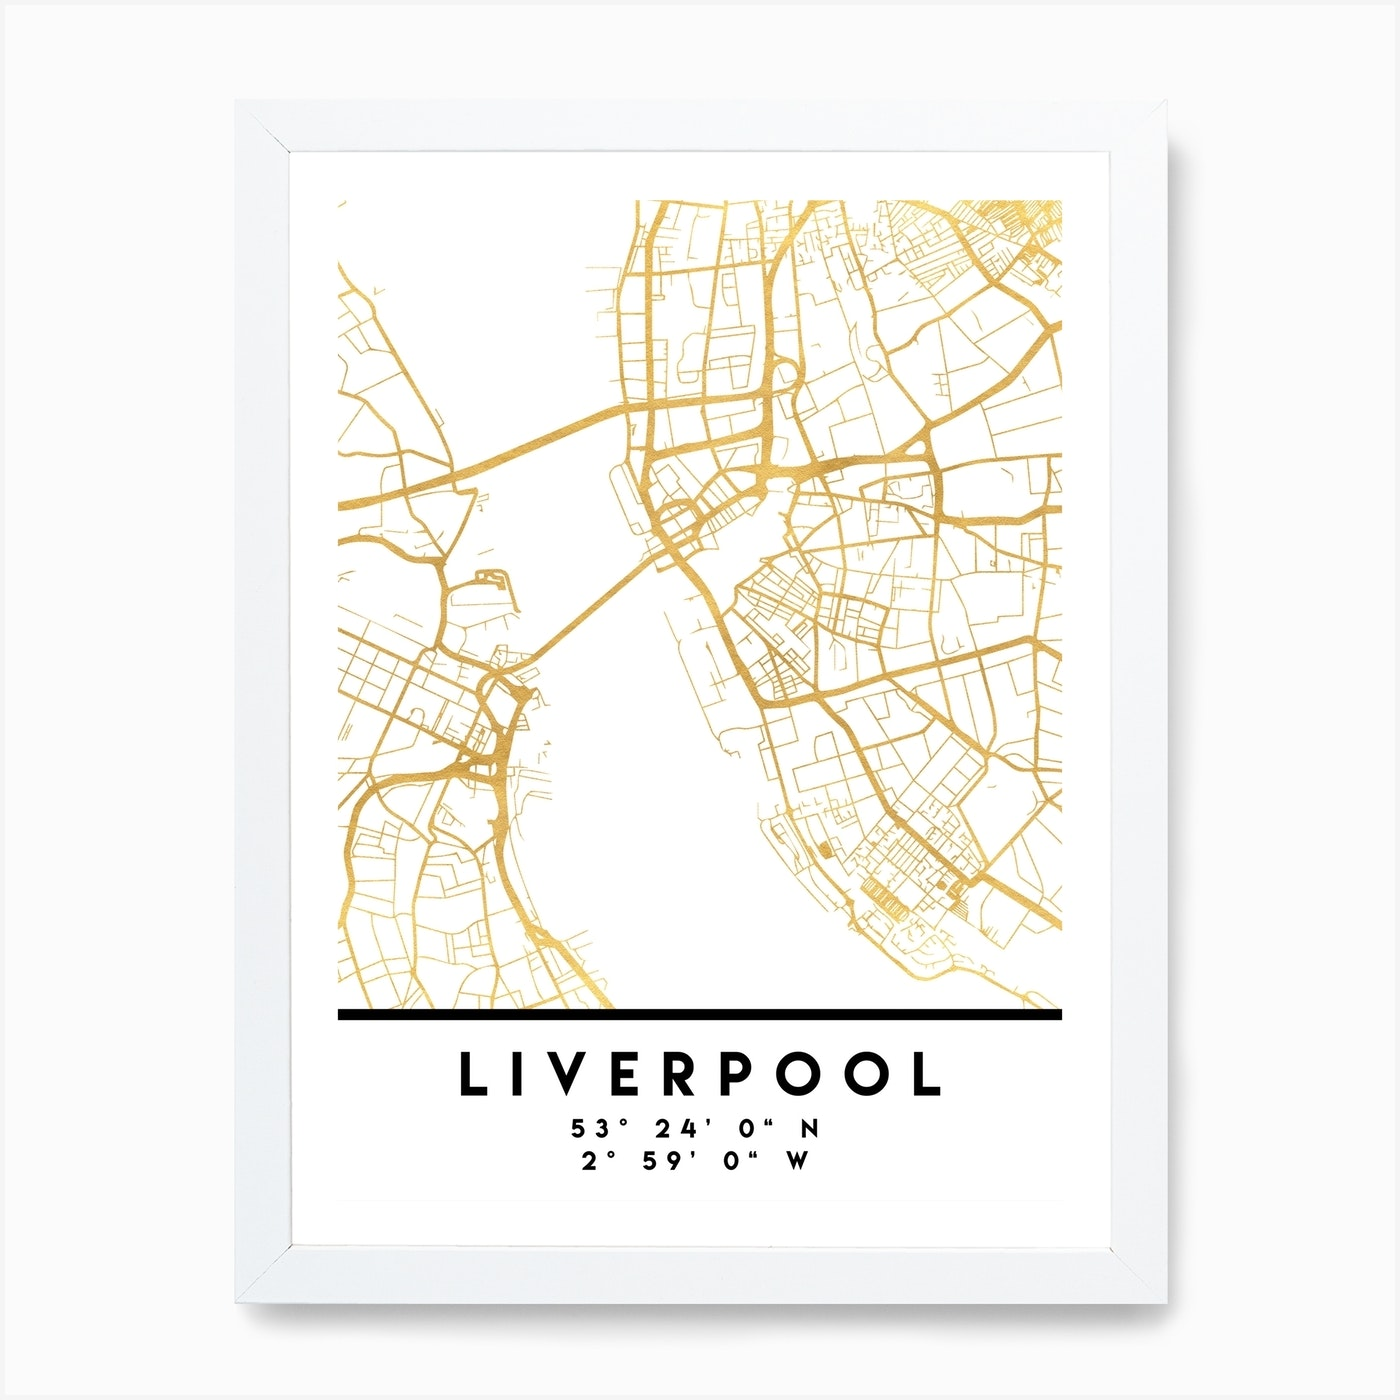 Liverpool England City Street Map Art Print on counties and cities in england, coloring pages map of england, new york state map england, map of britain and england, map dorking england, satellite view of england, zoomable map of england, large map of england, po river map of england, green map of england, travel map of england, physical map of england, detailed map of england, map of scotland and northern england, full map of england, map of europe england, dark ages map of england, outline map of england, cities of england, road map of southern new england,